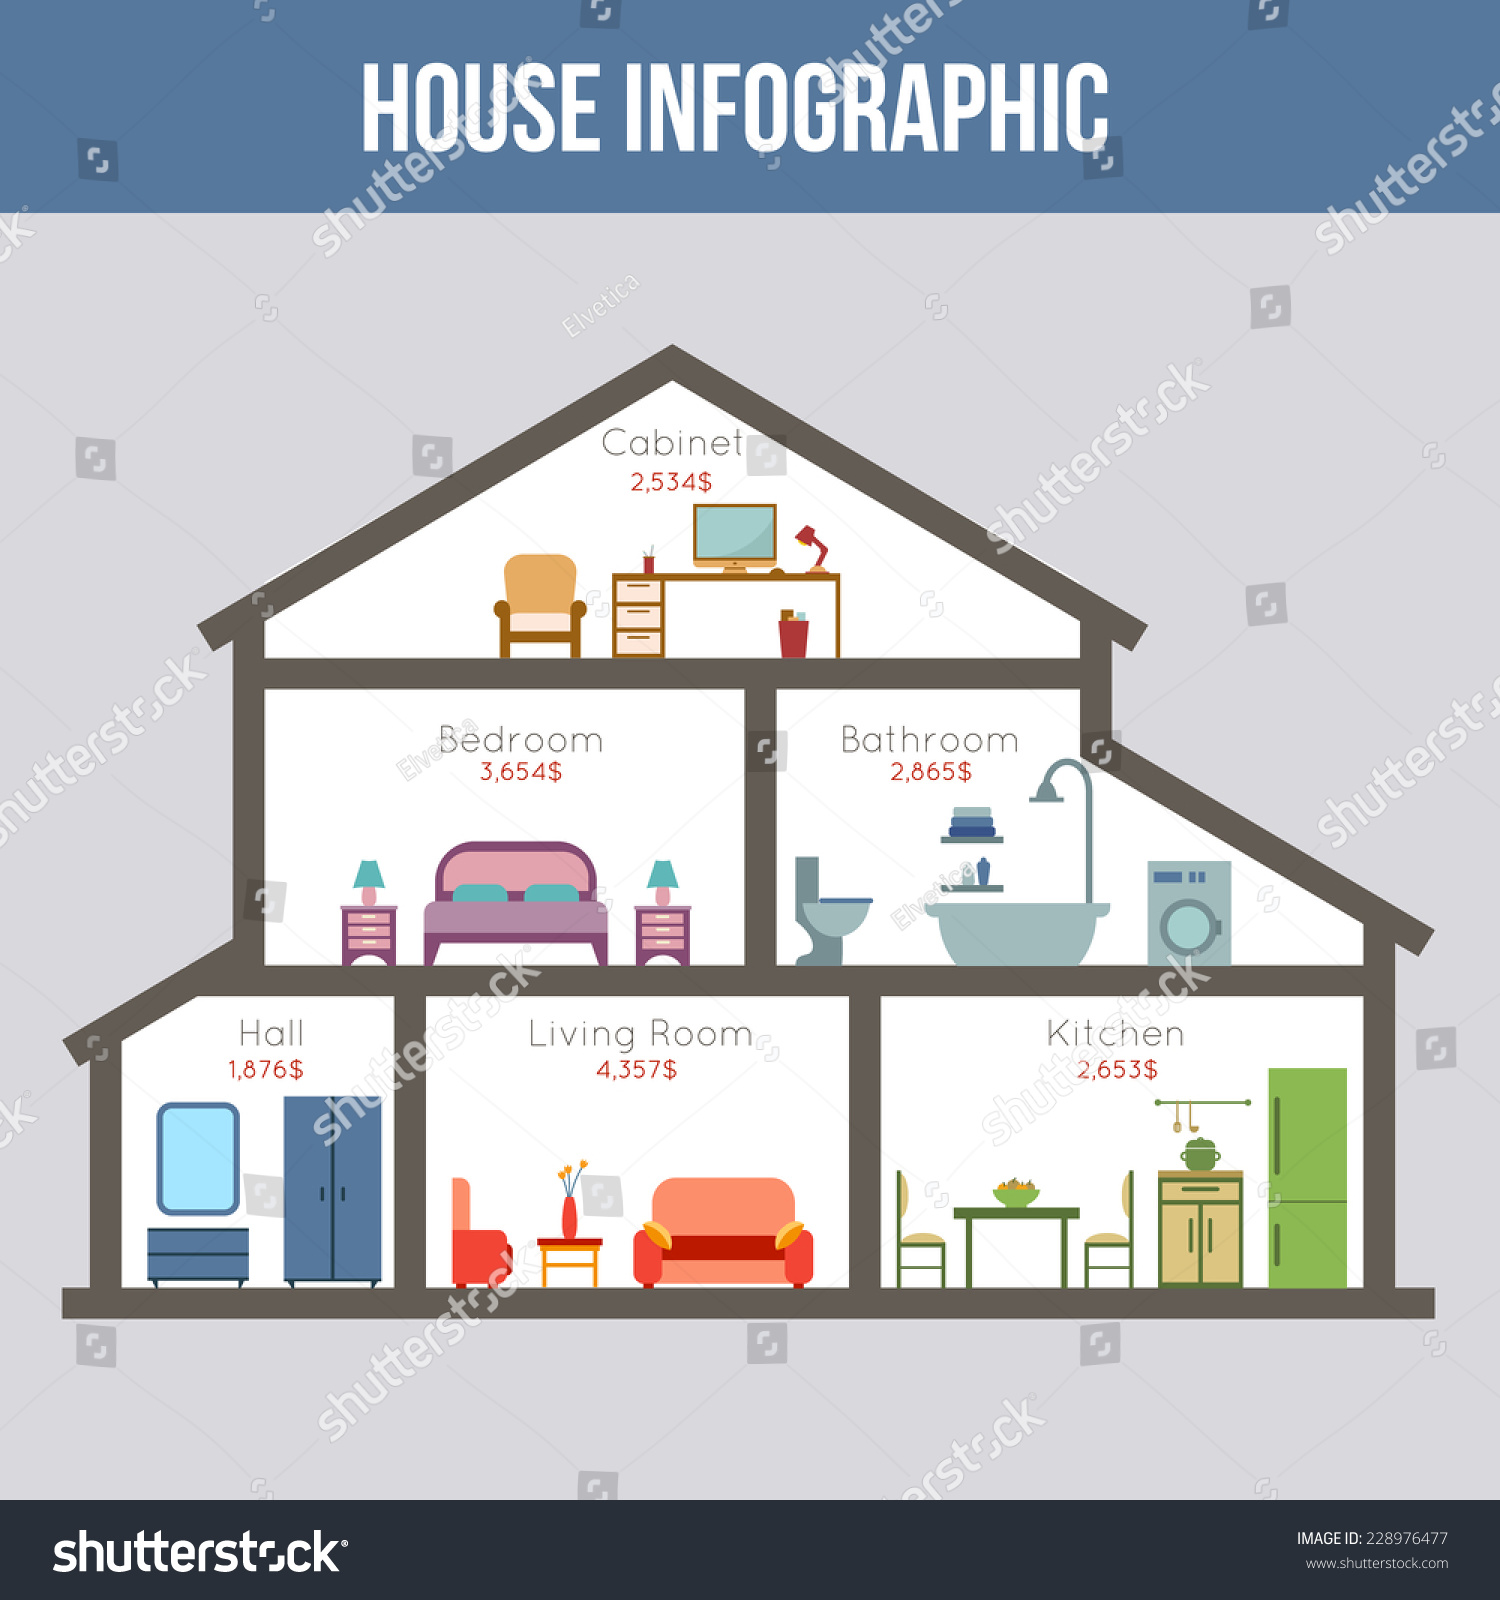 House Infographic Rooms Furniture Statistic Flat Stock